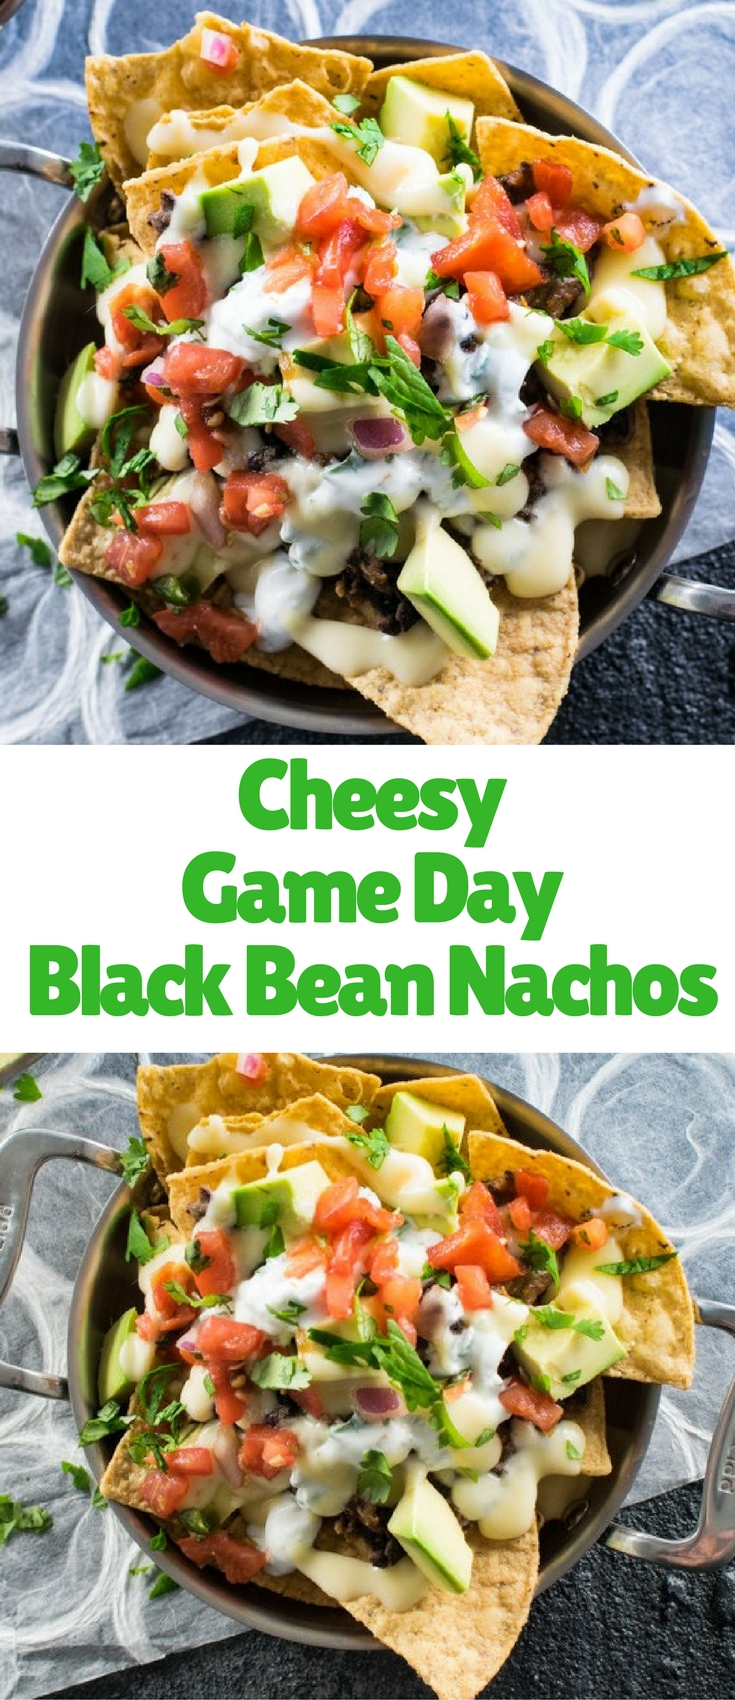 These vegetarian black bean nachos are topped with a creamy cheese sauce to ensure tasty goodness in every bite!